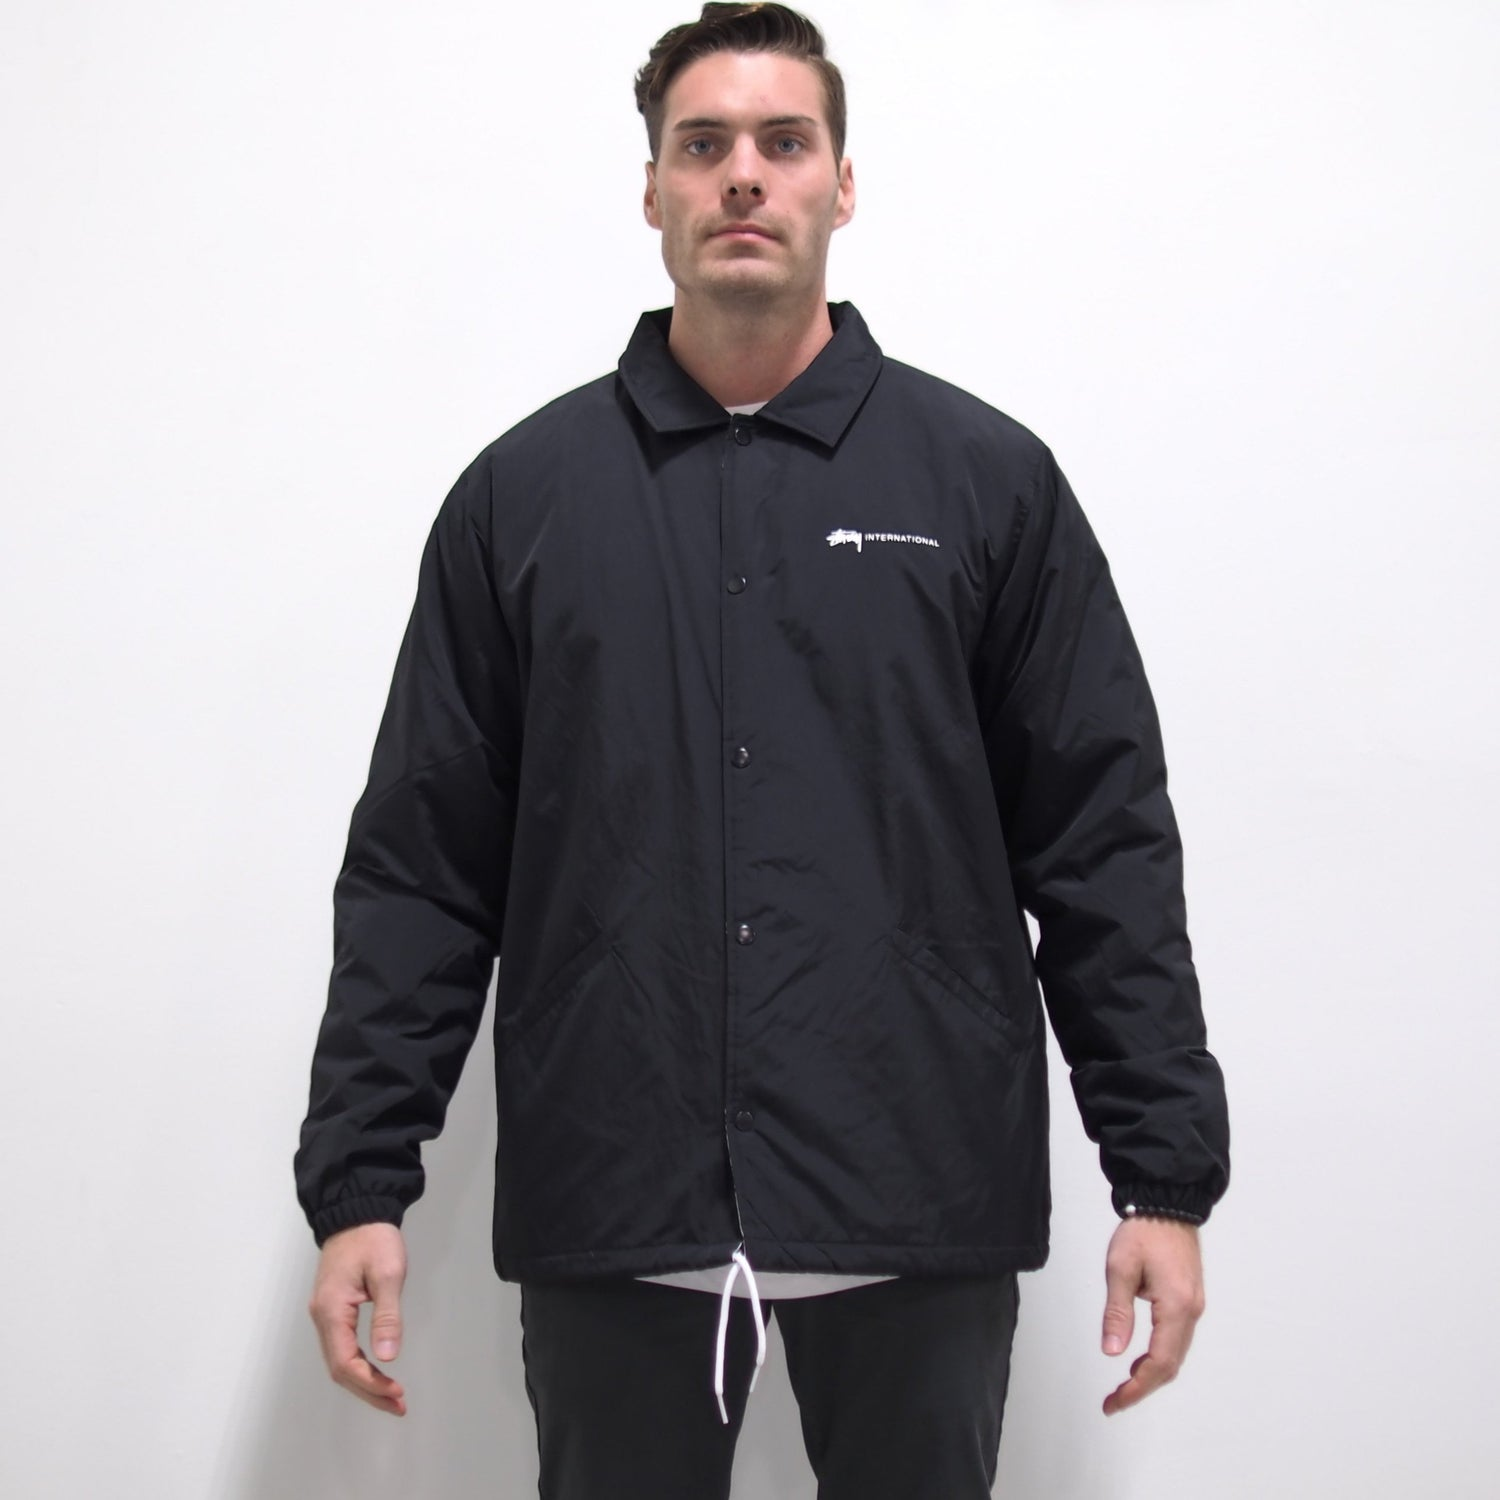 INTNL COACHES JACKET